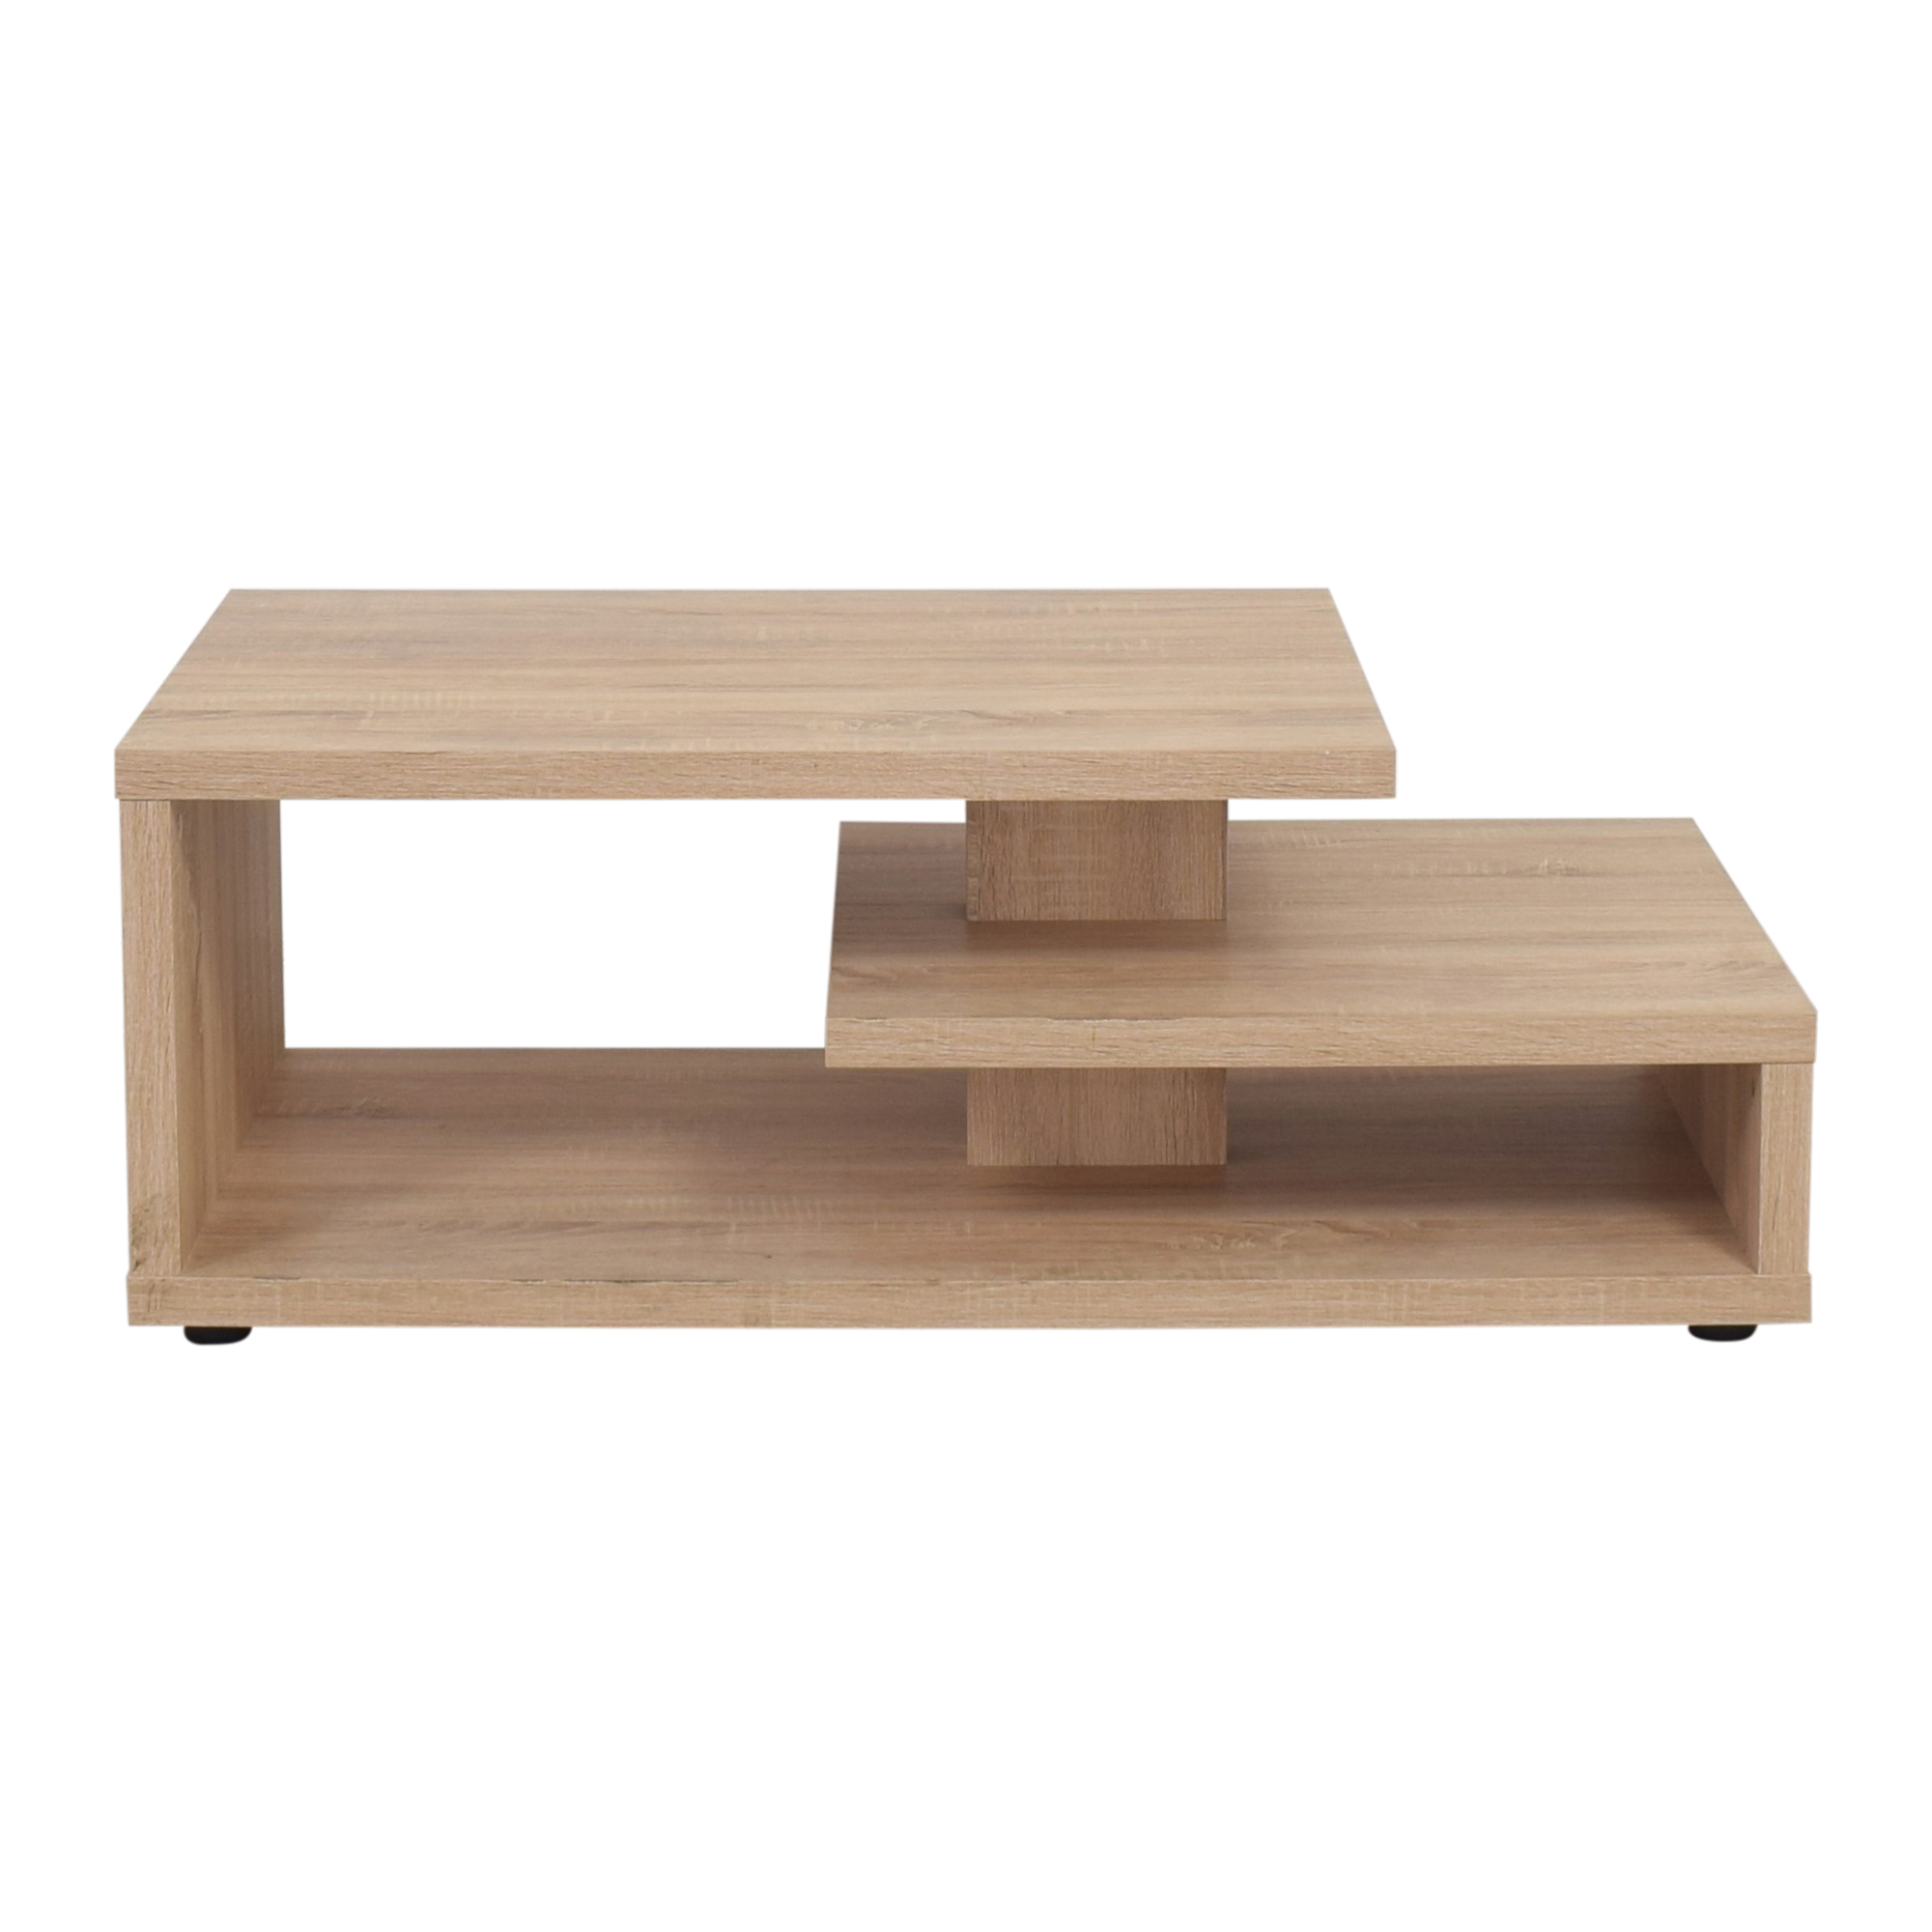 West Elm West Elm Modern Coffee Table dimensions